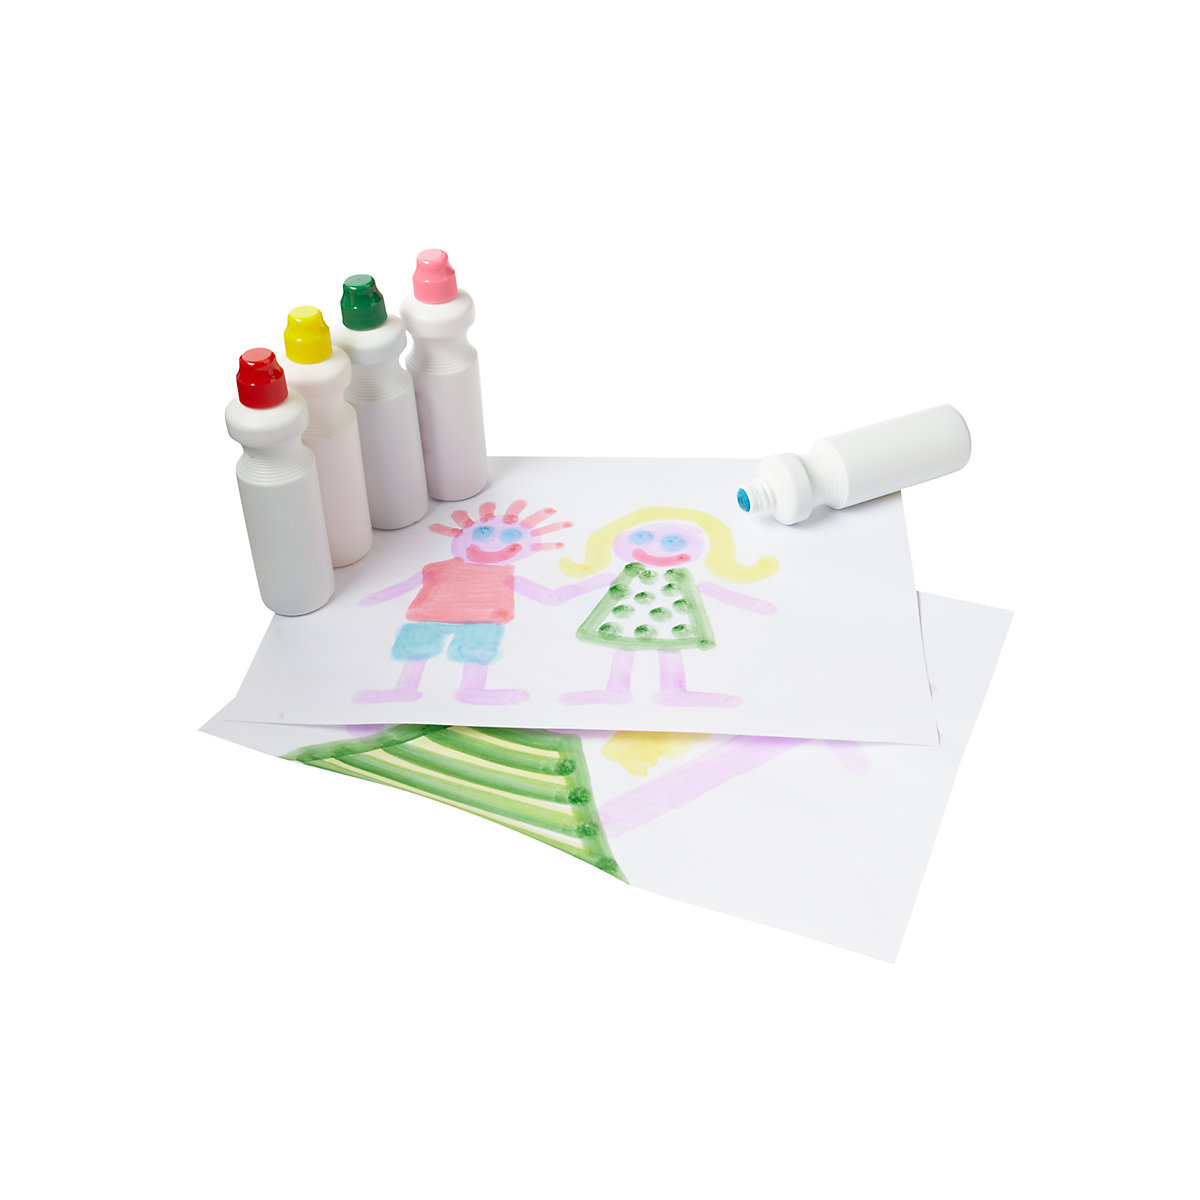 New ELC Boys and Girls easy painters Toy From 3 years - Early Learning Centre Gifts